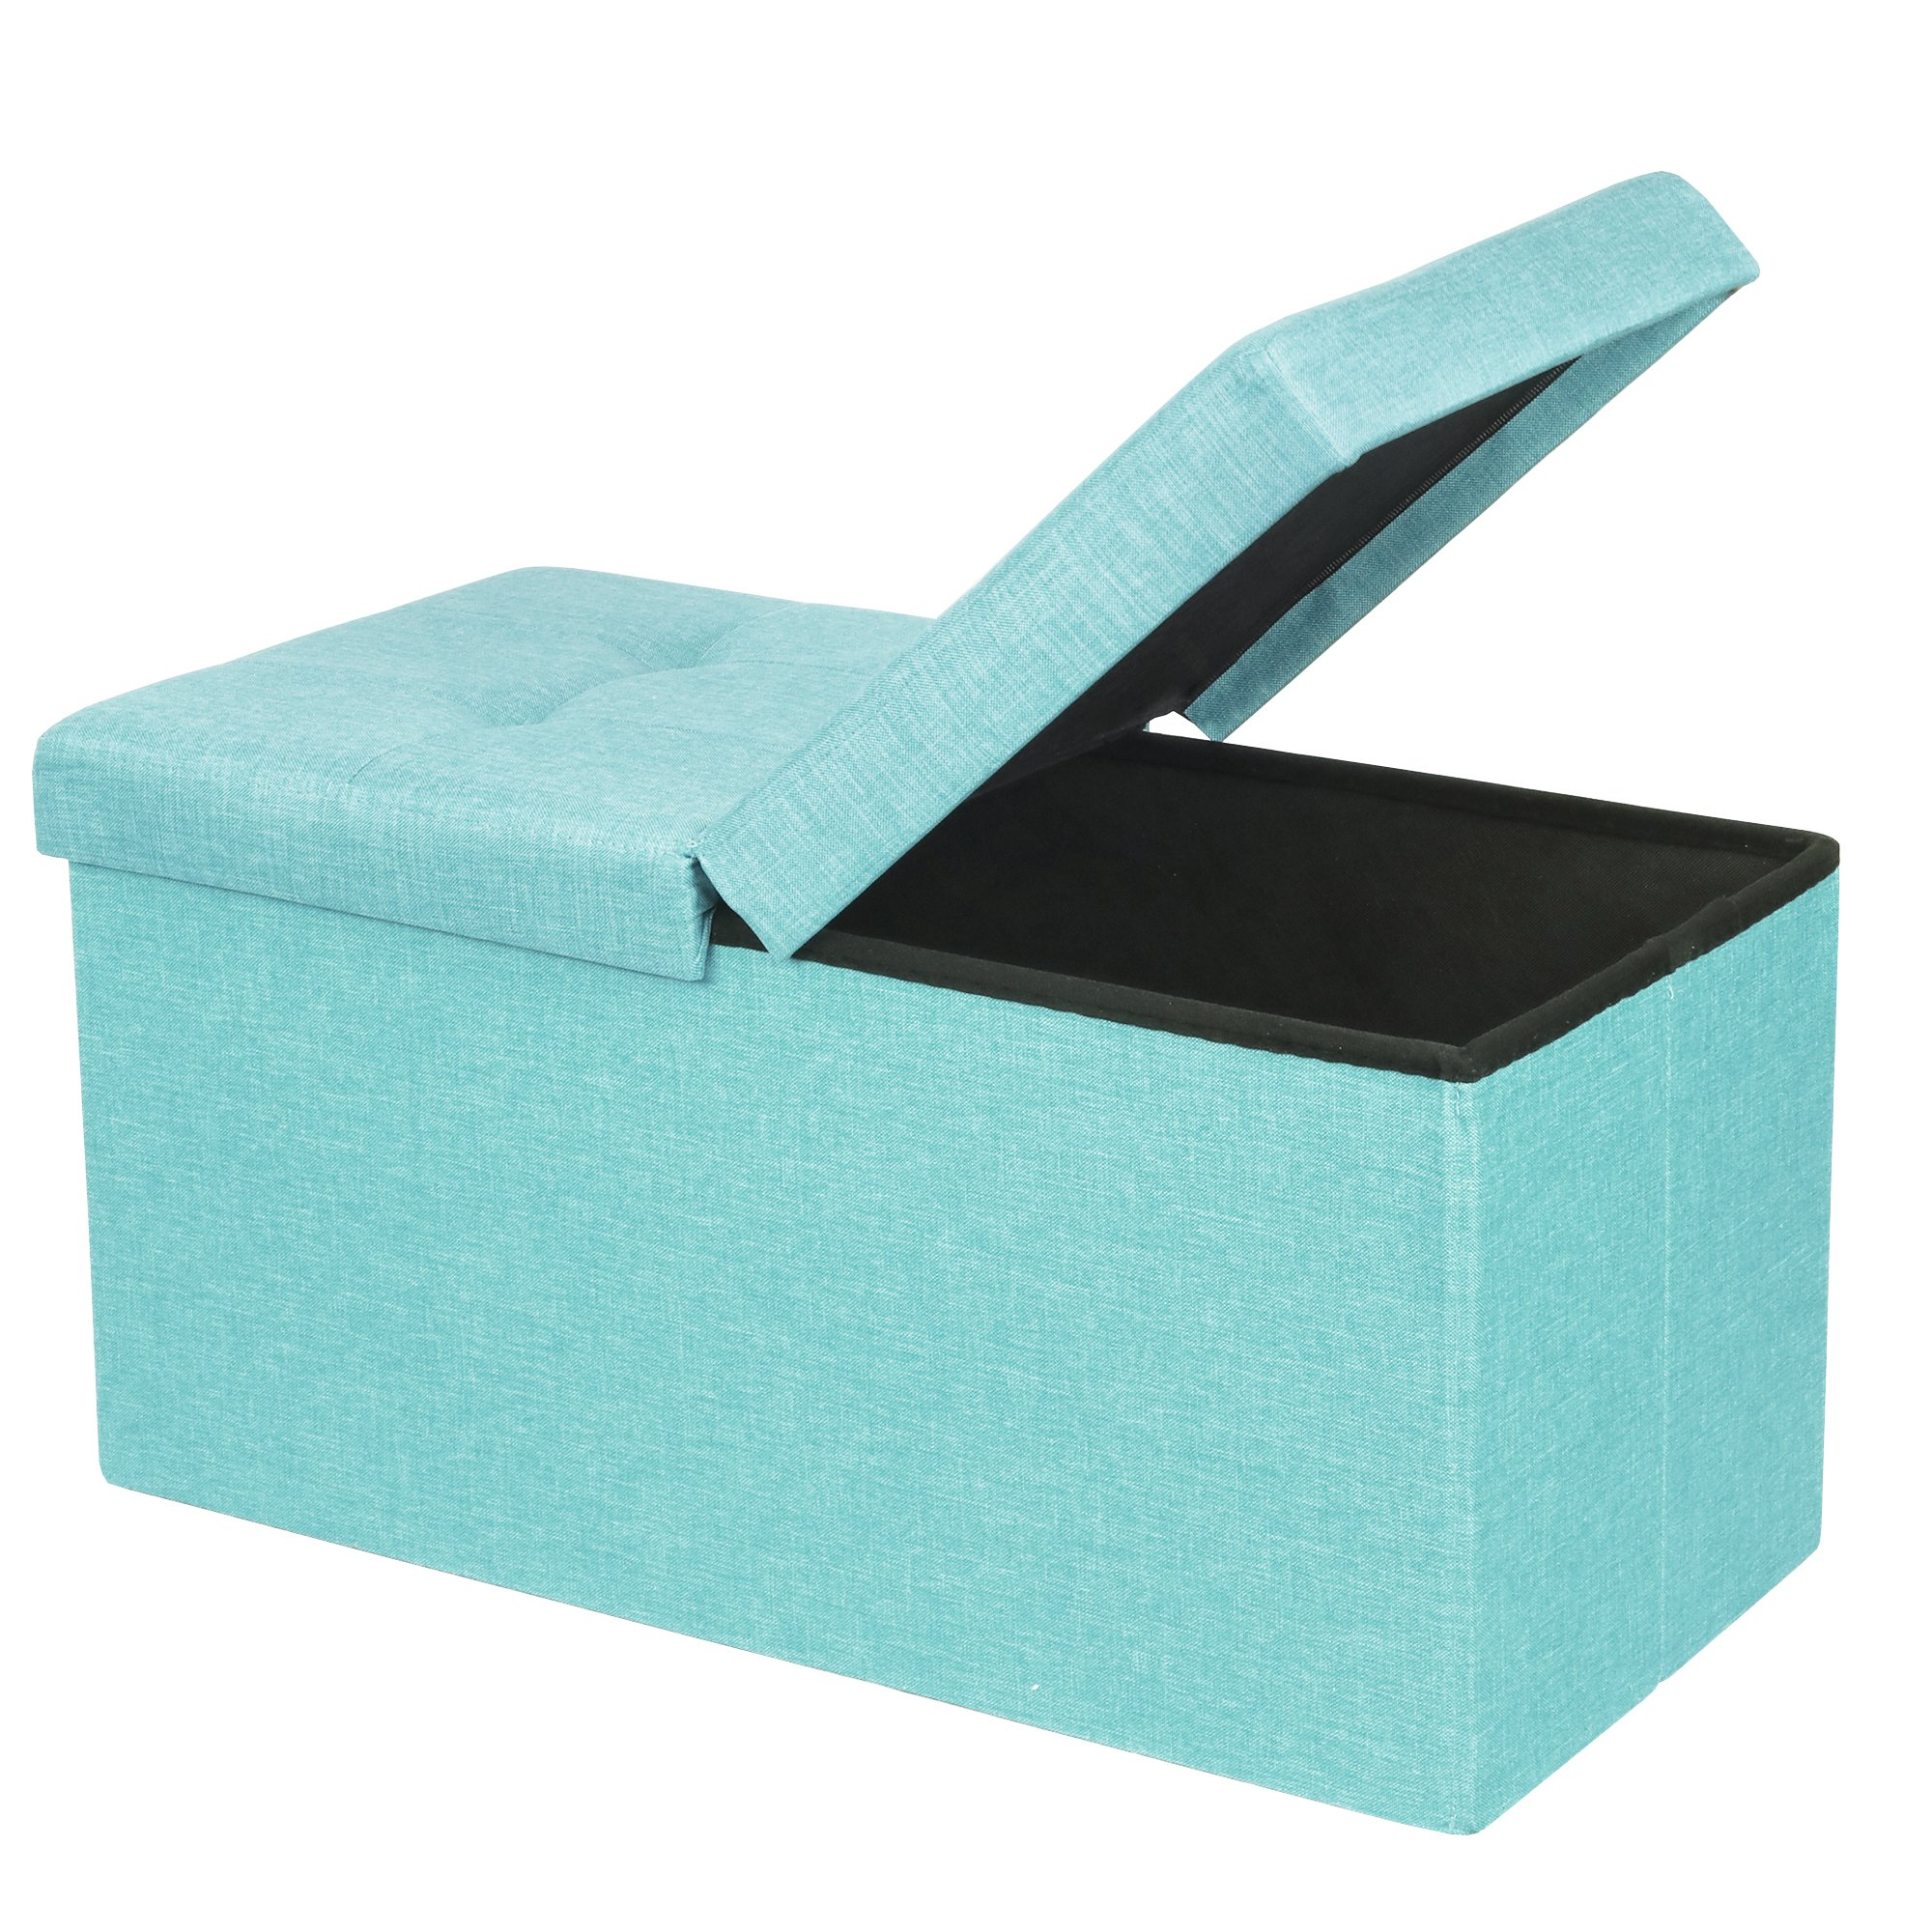 Otto & Ben Folding Toy Box Chest with SMART LIFT Top, Upholstered Tufted Ottomans Bench Foot Rest for Bedroom, Mint Blue by Otto & Ben